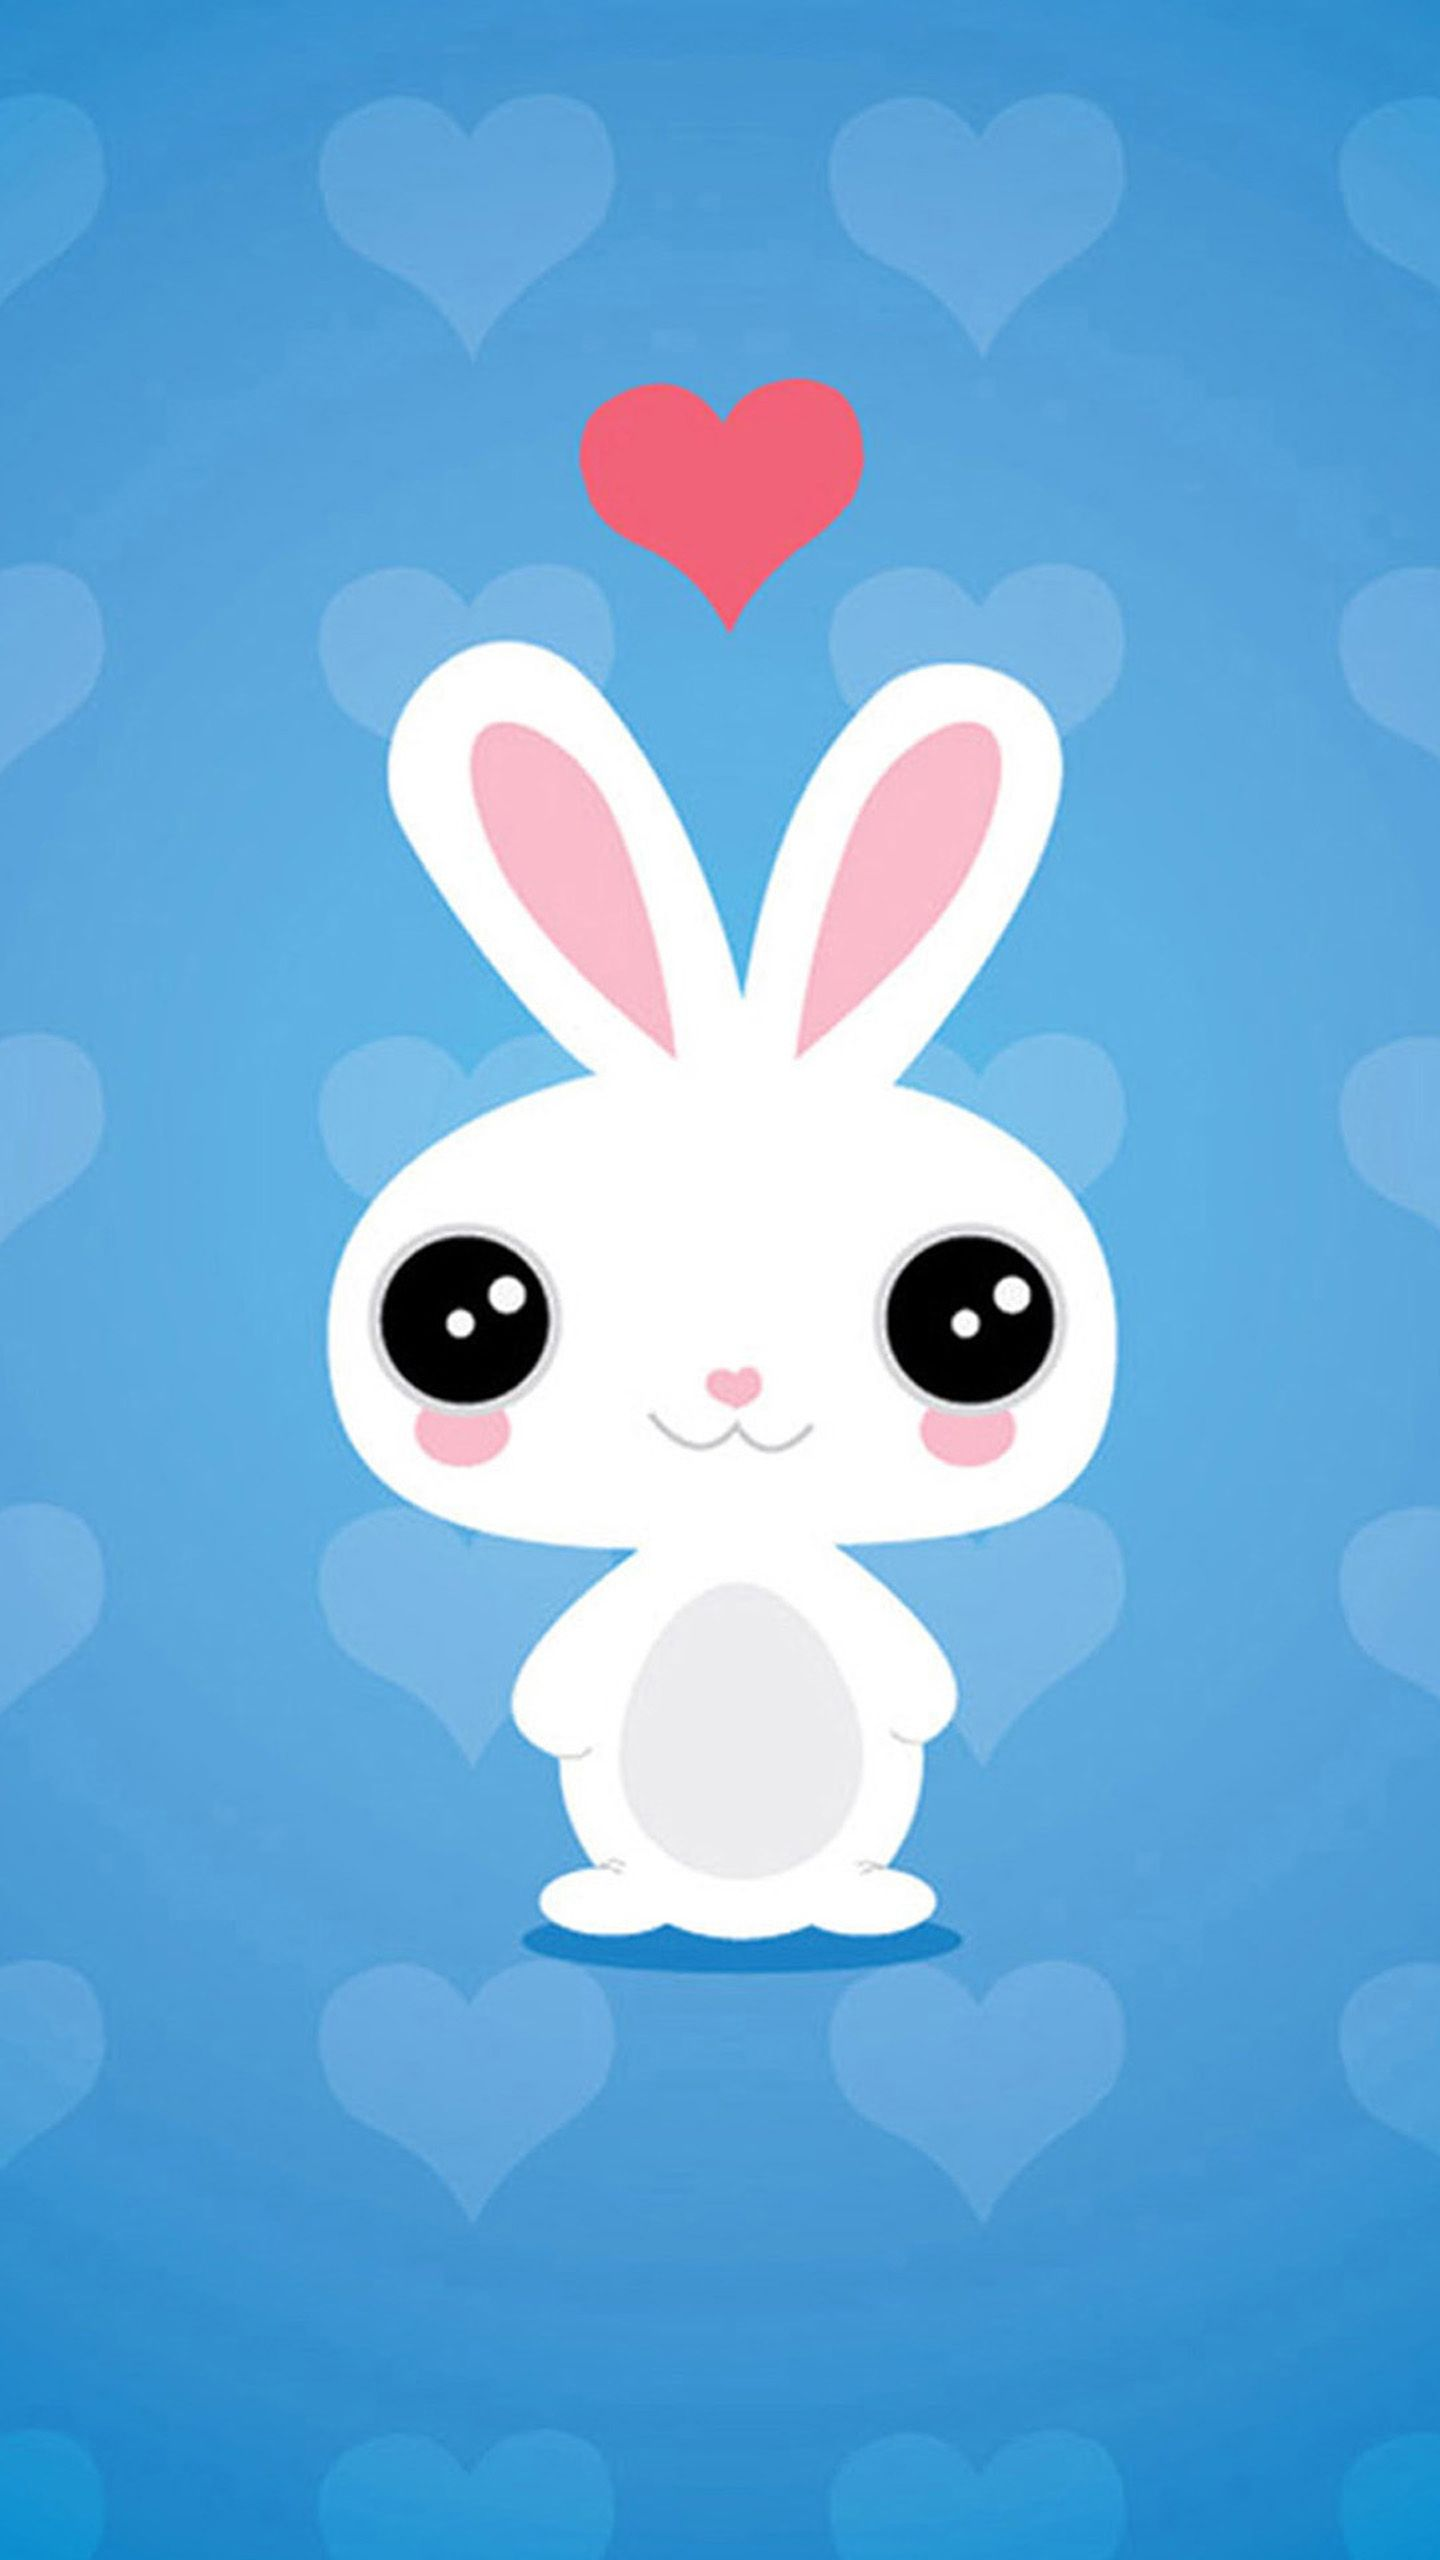 Cute Cartoon Bunny Wallpapers Top Free Cute Cartoon Bunny